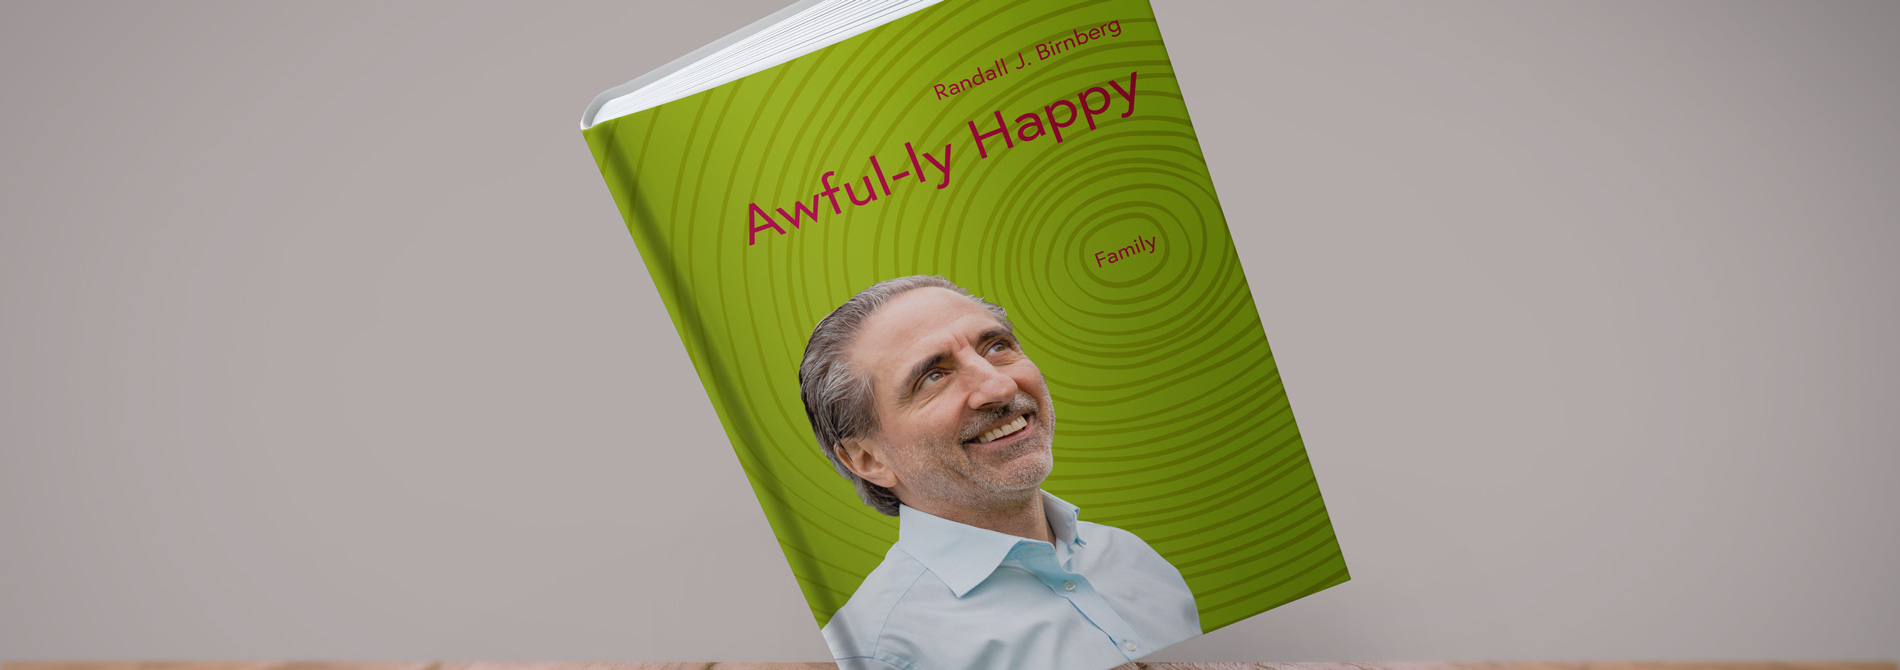 awful-ly happy book cover